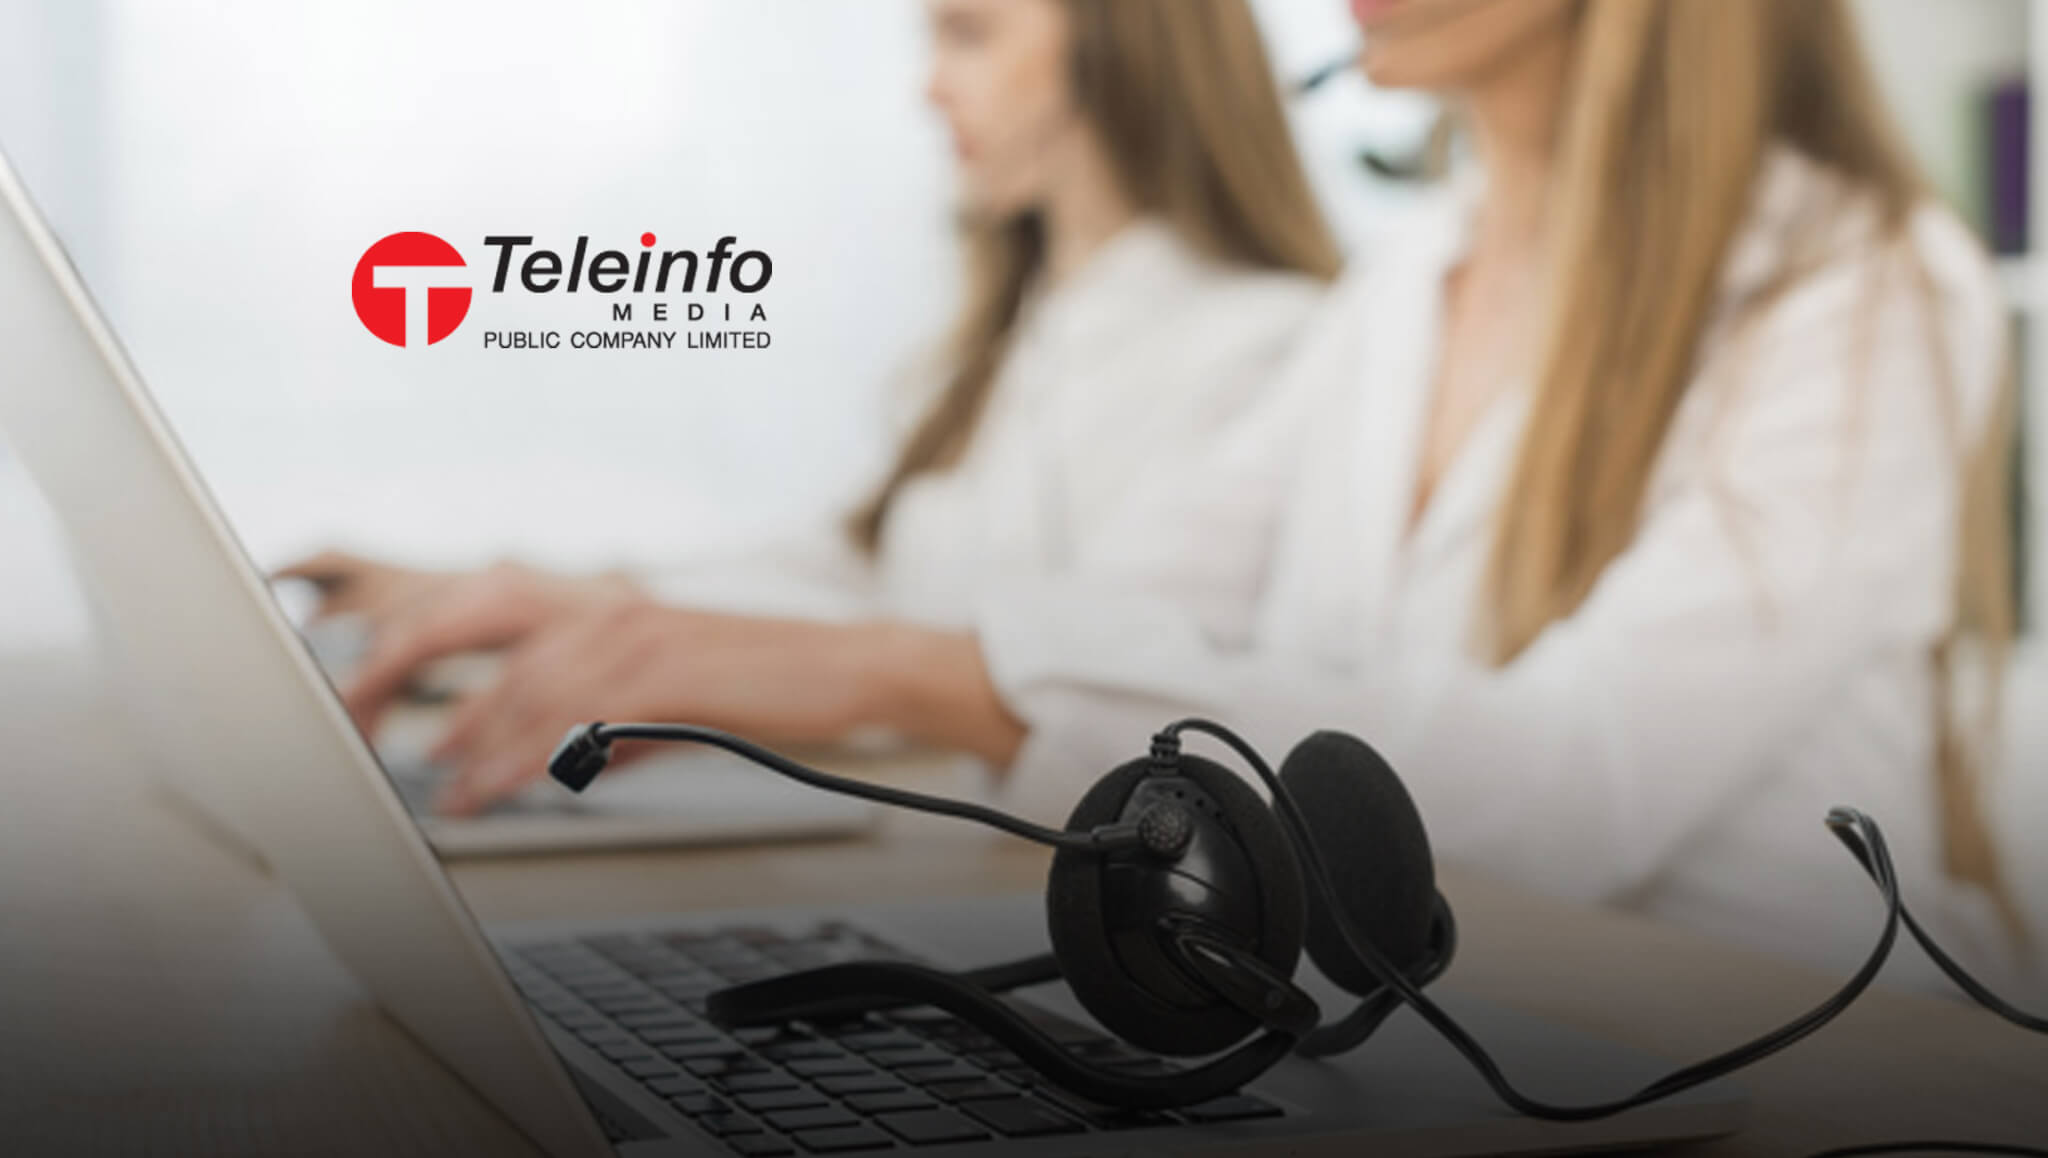 Teleinfo Media moves its call centers to cloud in Thailand